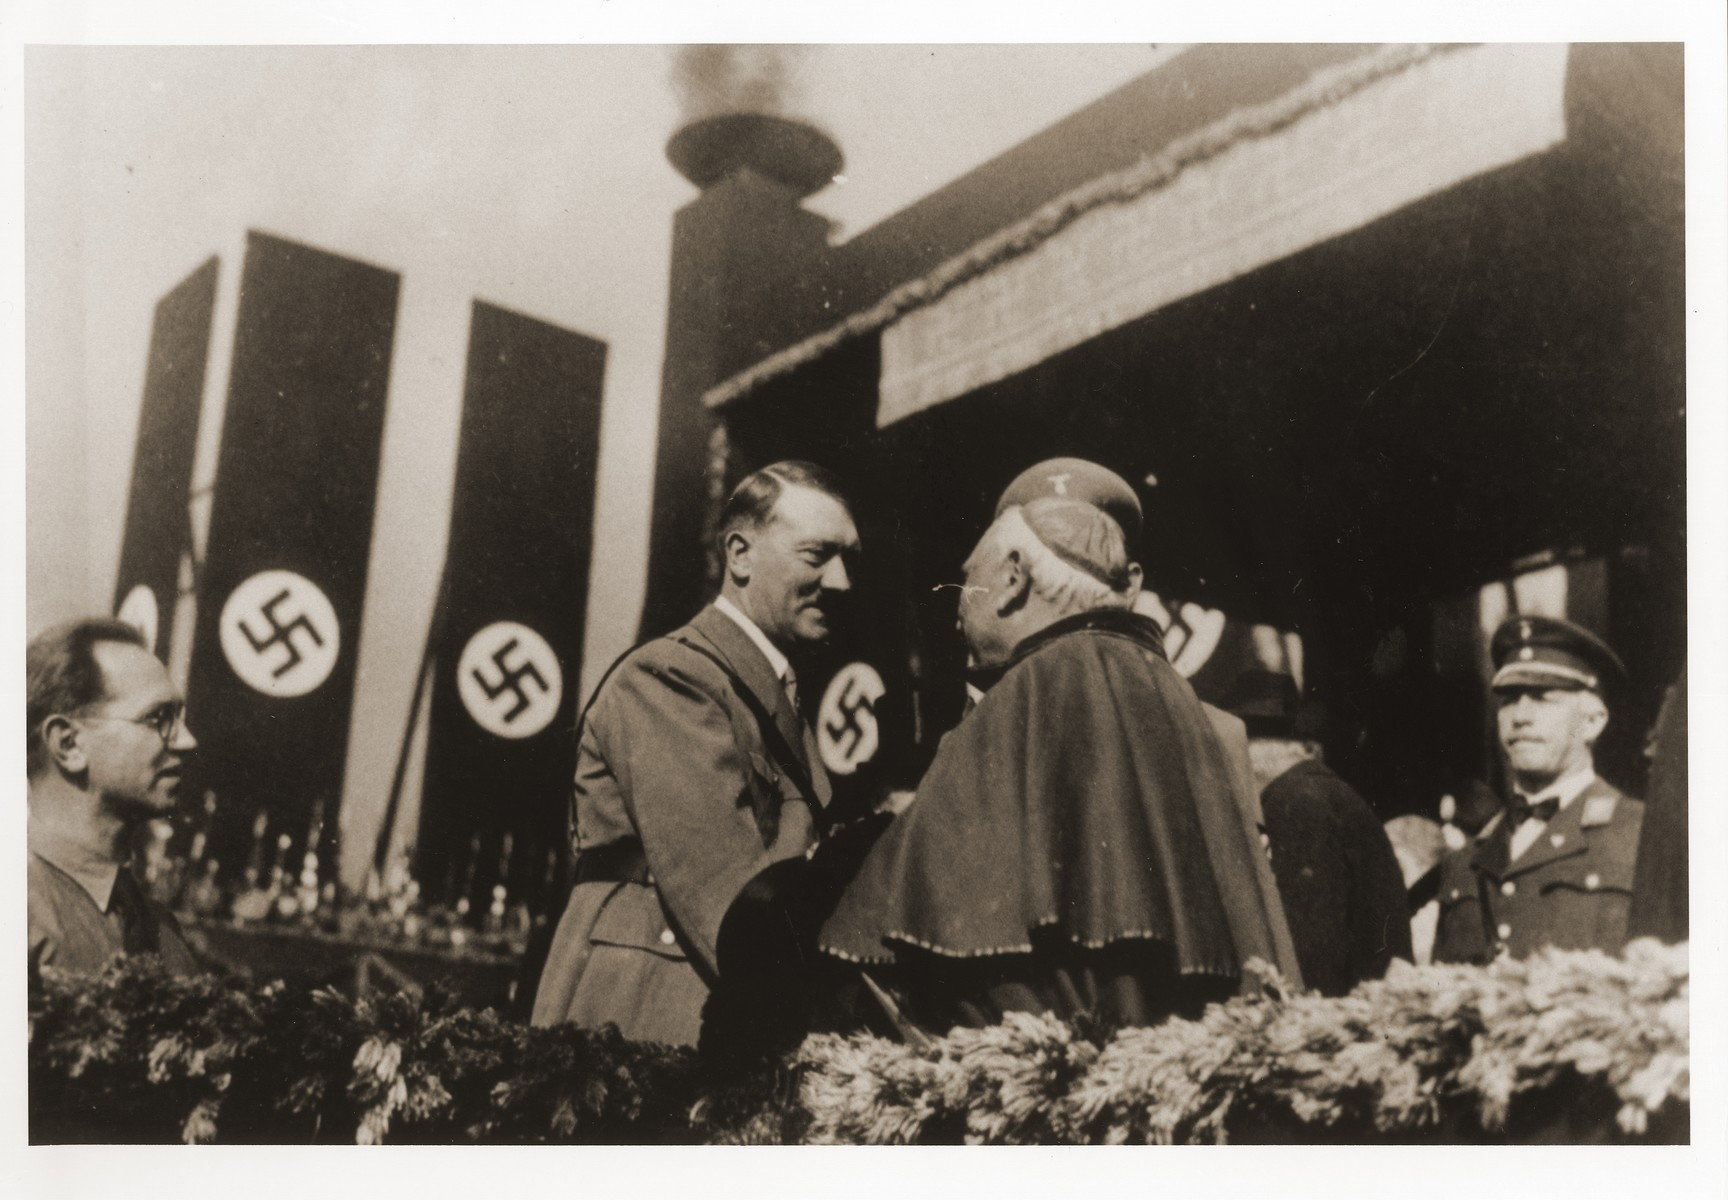 Adolf Hitler greets Munich Nuncio Archbishop Alberto Vassallo di Torregrossa, Munich, 1933. The occasion was probably the ground stone laying ceremony at the Haus der Kunst (Art Exhibition Hall) in Munich, October 15, 1933. The Vatican subsequently protested the Nazi Party's use of the photograph for election propaganda.